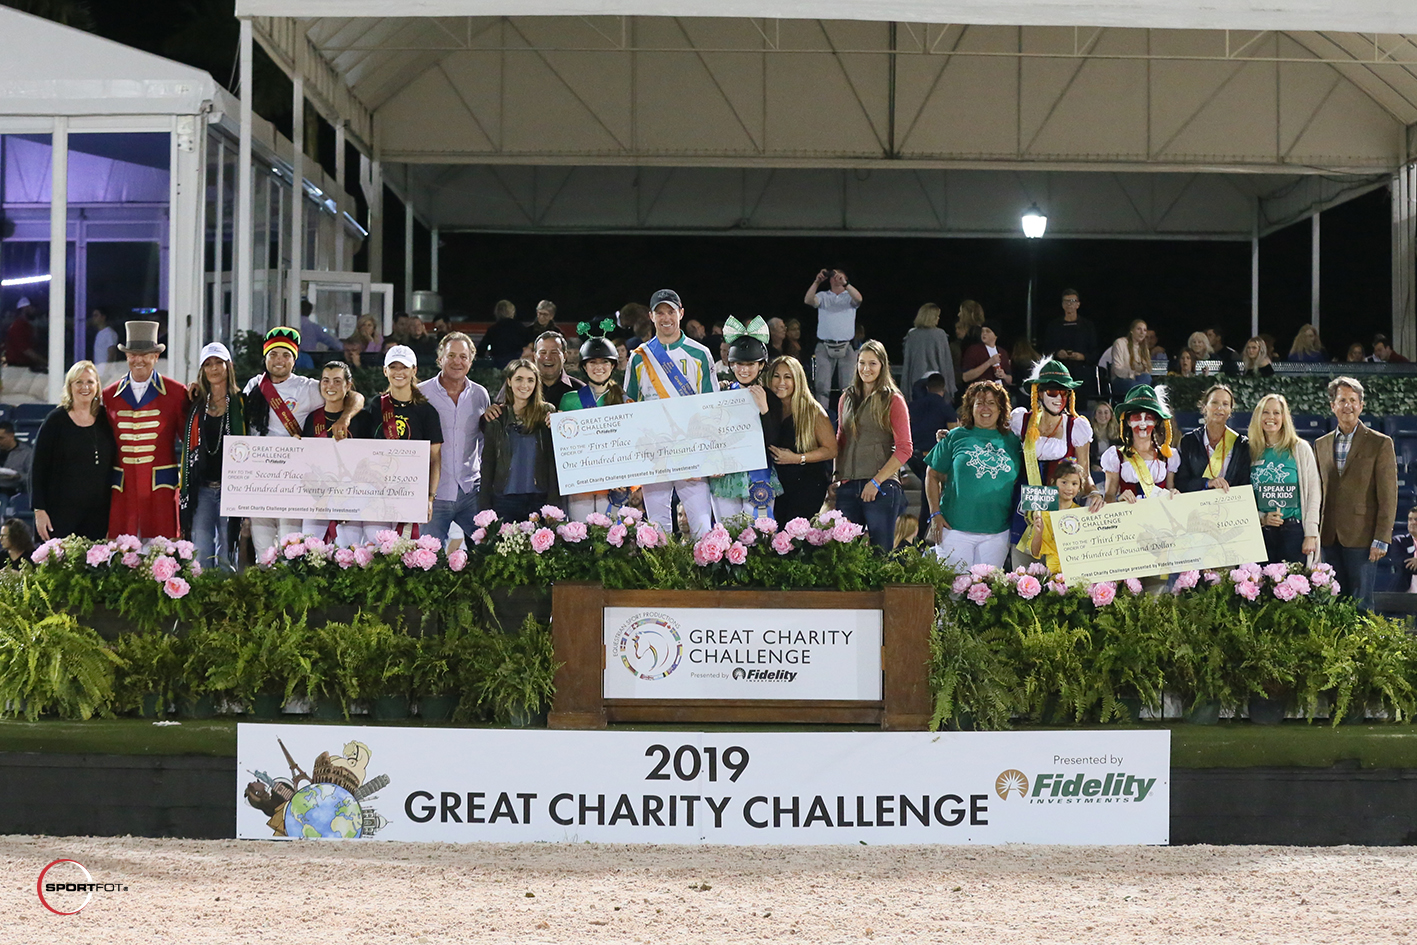 The top three teams, along with their charity and team sponsor representatives, for the 2019 Great Charity Challenge, presented by Fidelity Investments®. Photo © Sportfot.